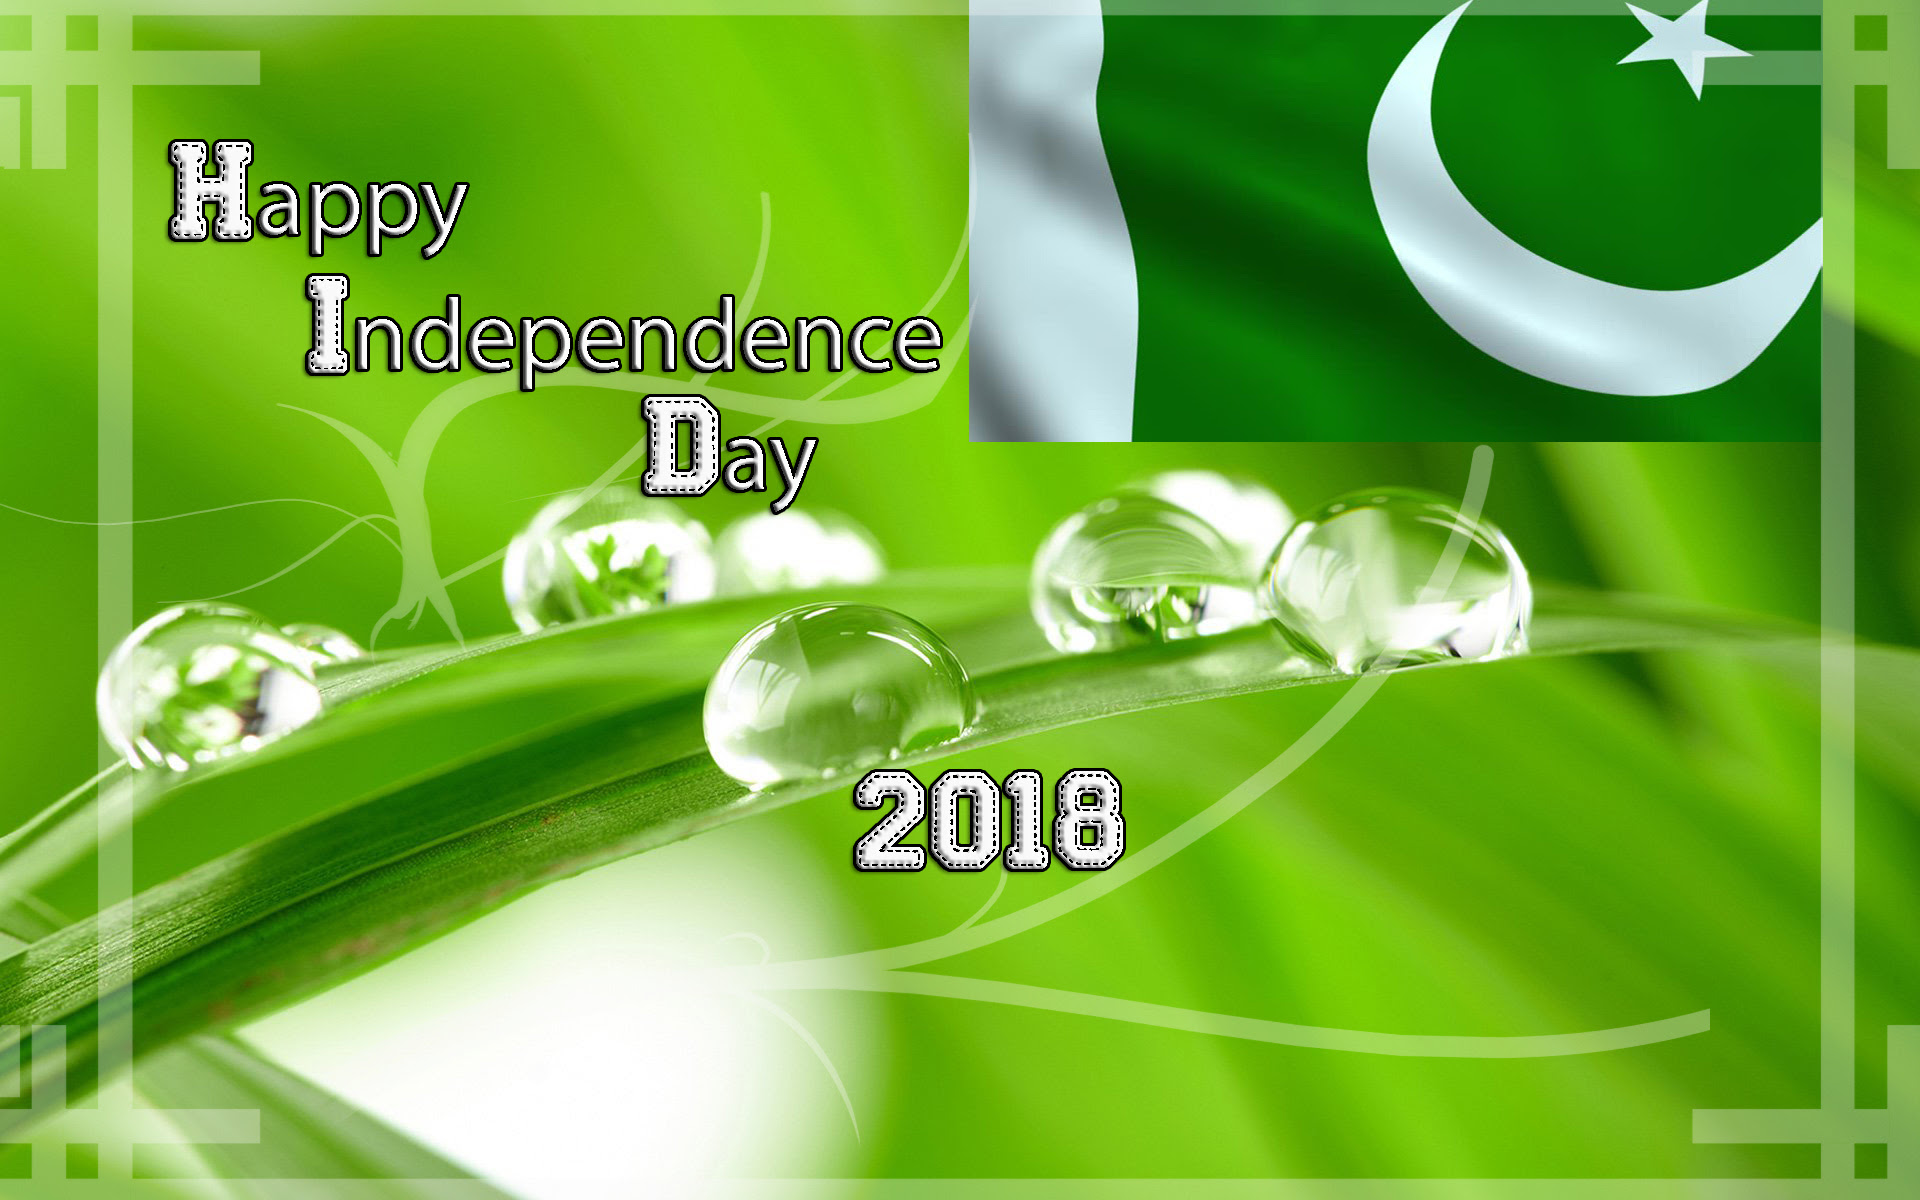 14th August Independence Day Wallpapers 2018 My Site